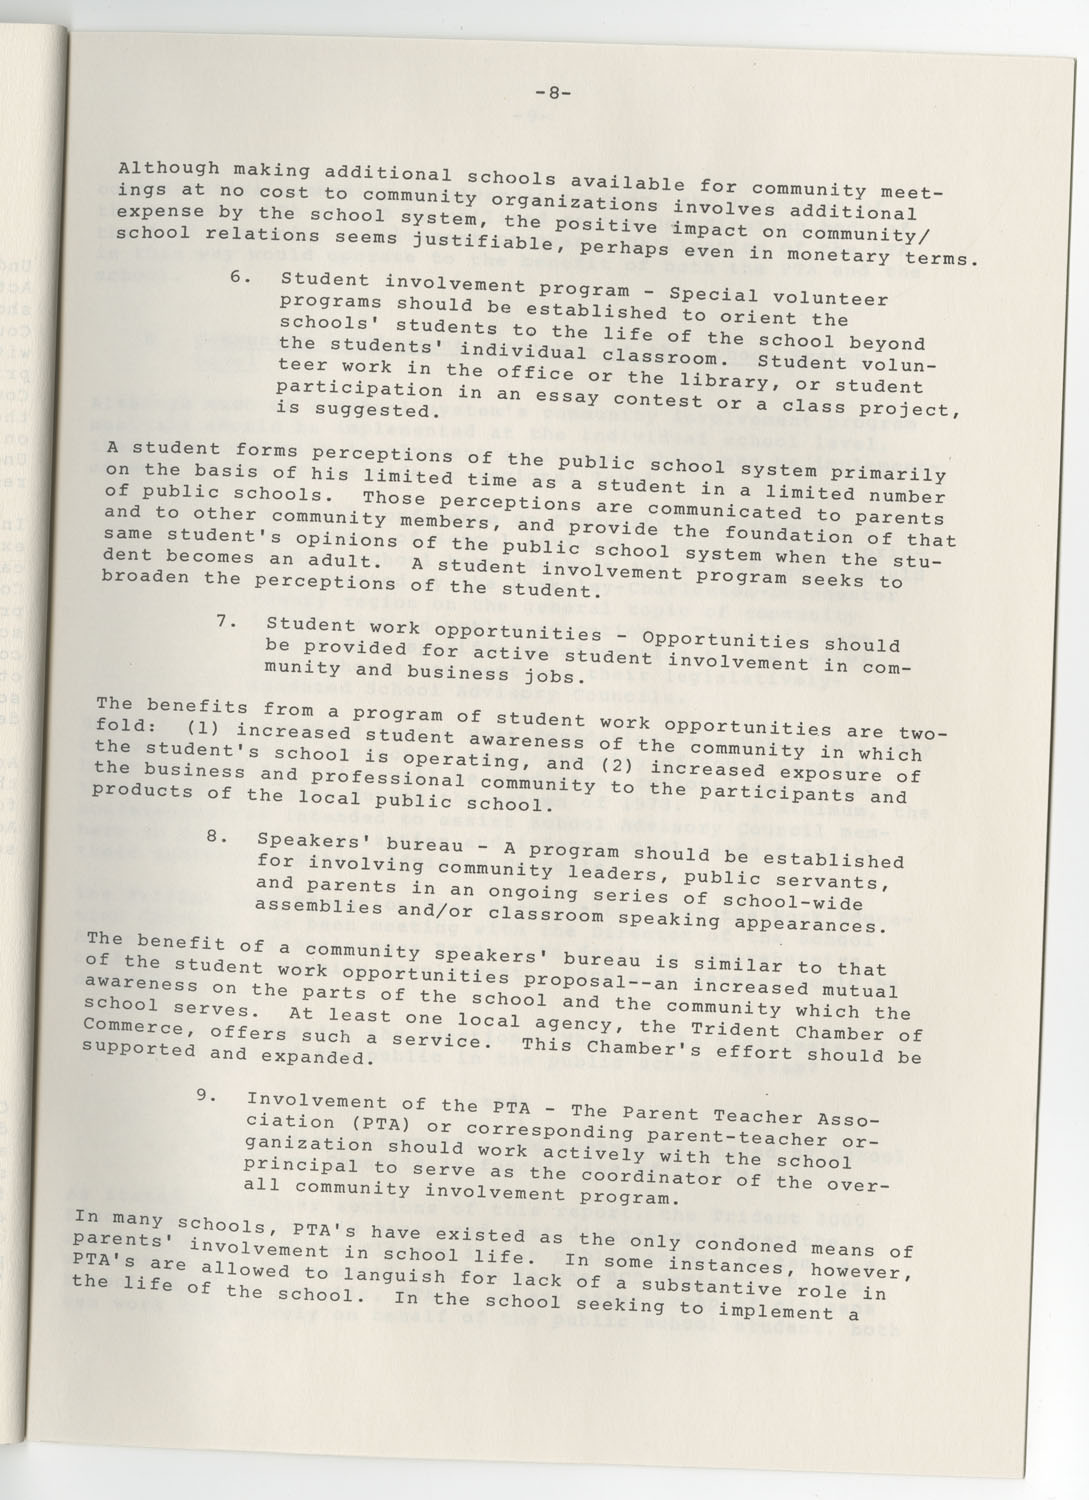 Trident 2000 Task Force Reports on Education, June 1978, Page 8